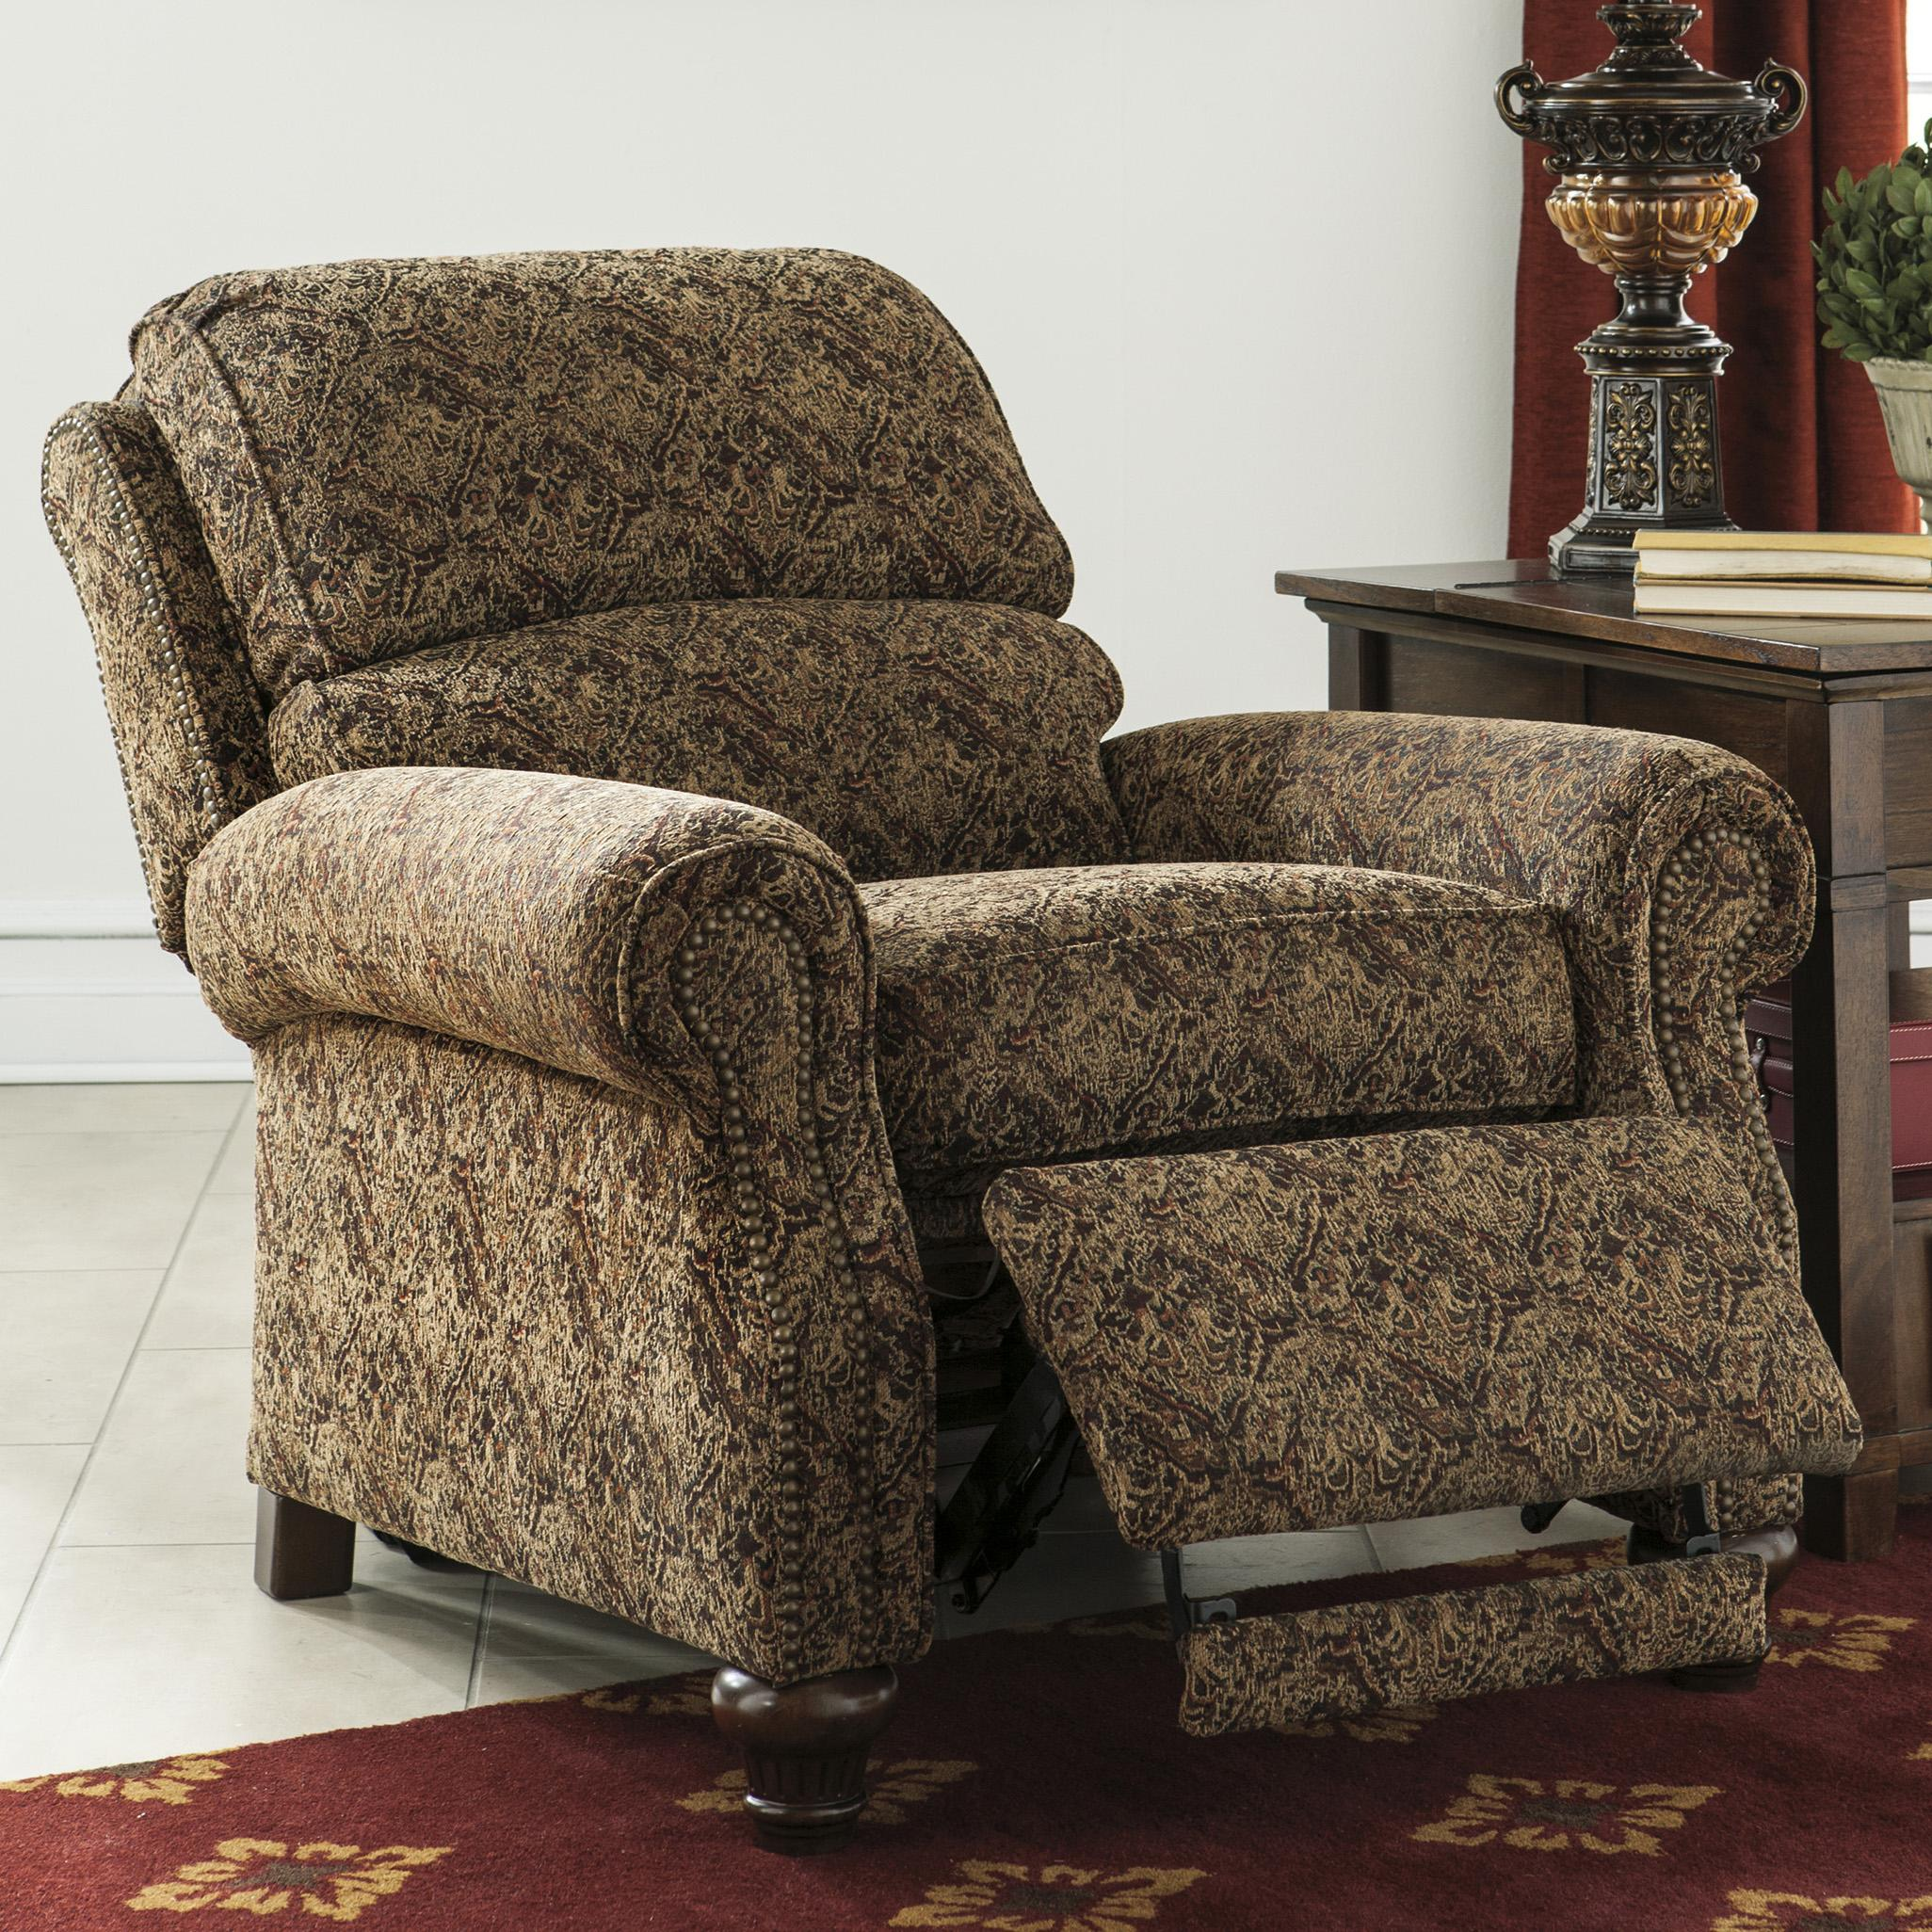 Transitional Style Push Back Low Leg Recliner & Transitional Style Push Back Low Leg Recliner by Signature Design ... islam-shia.org